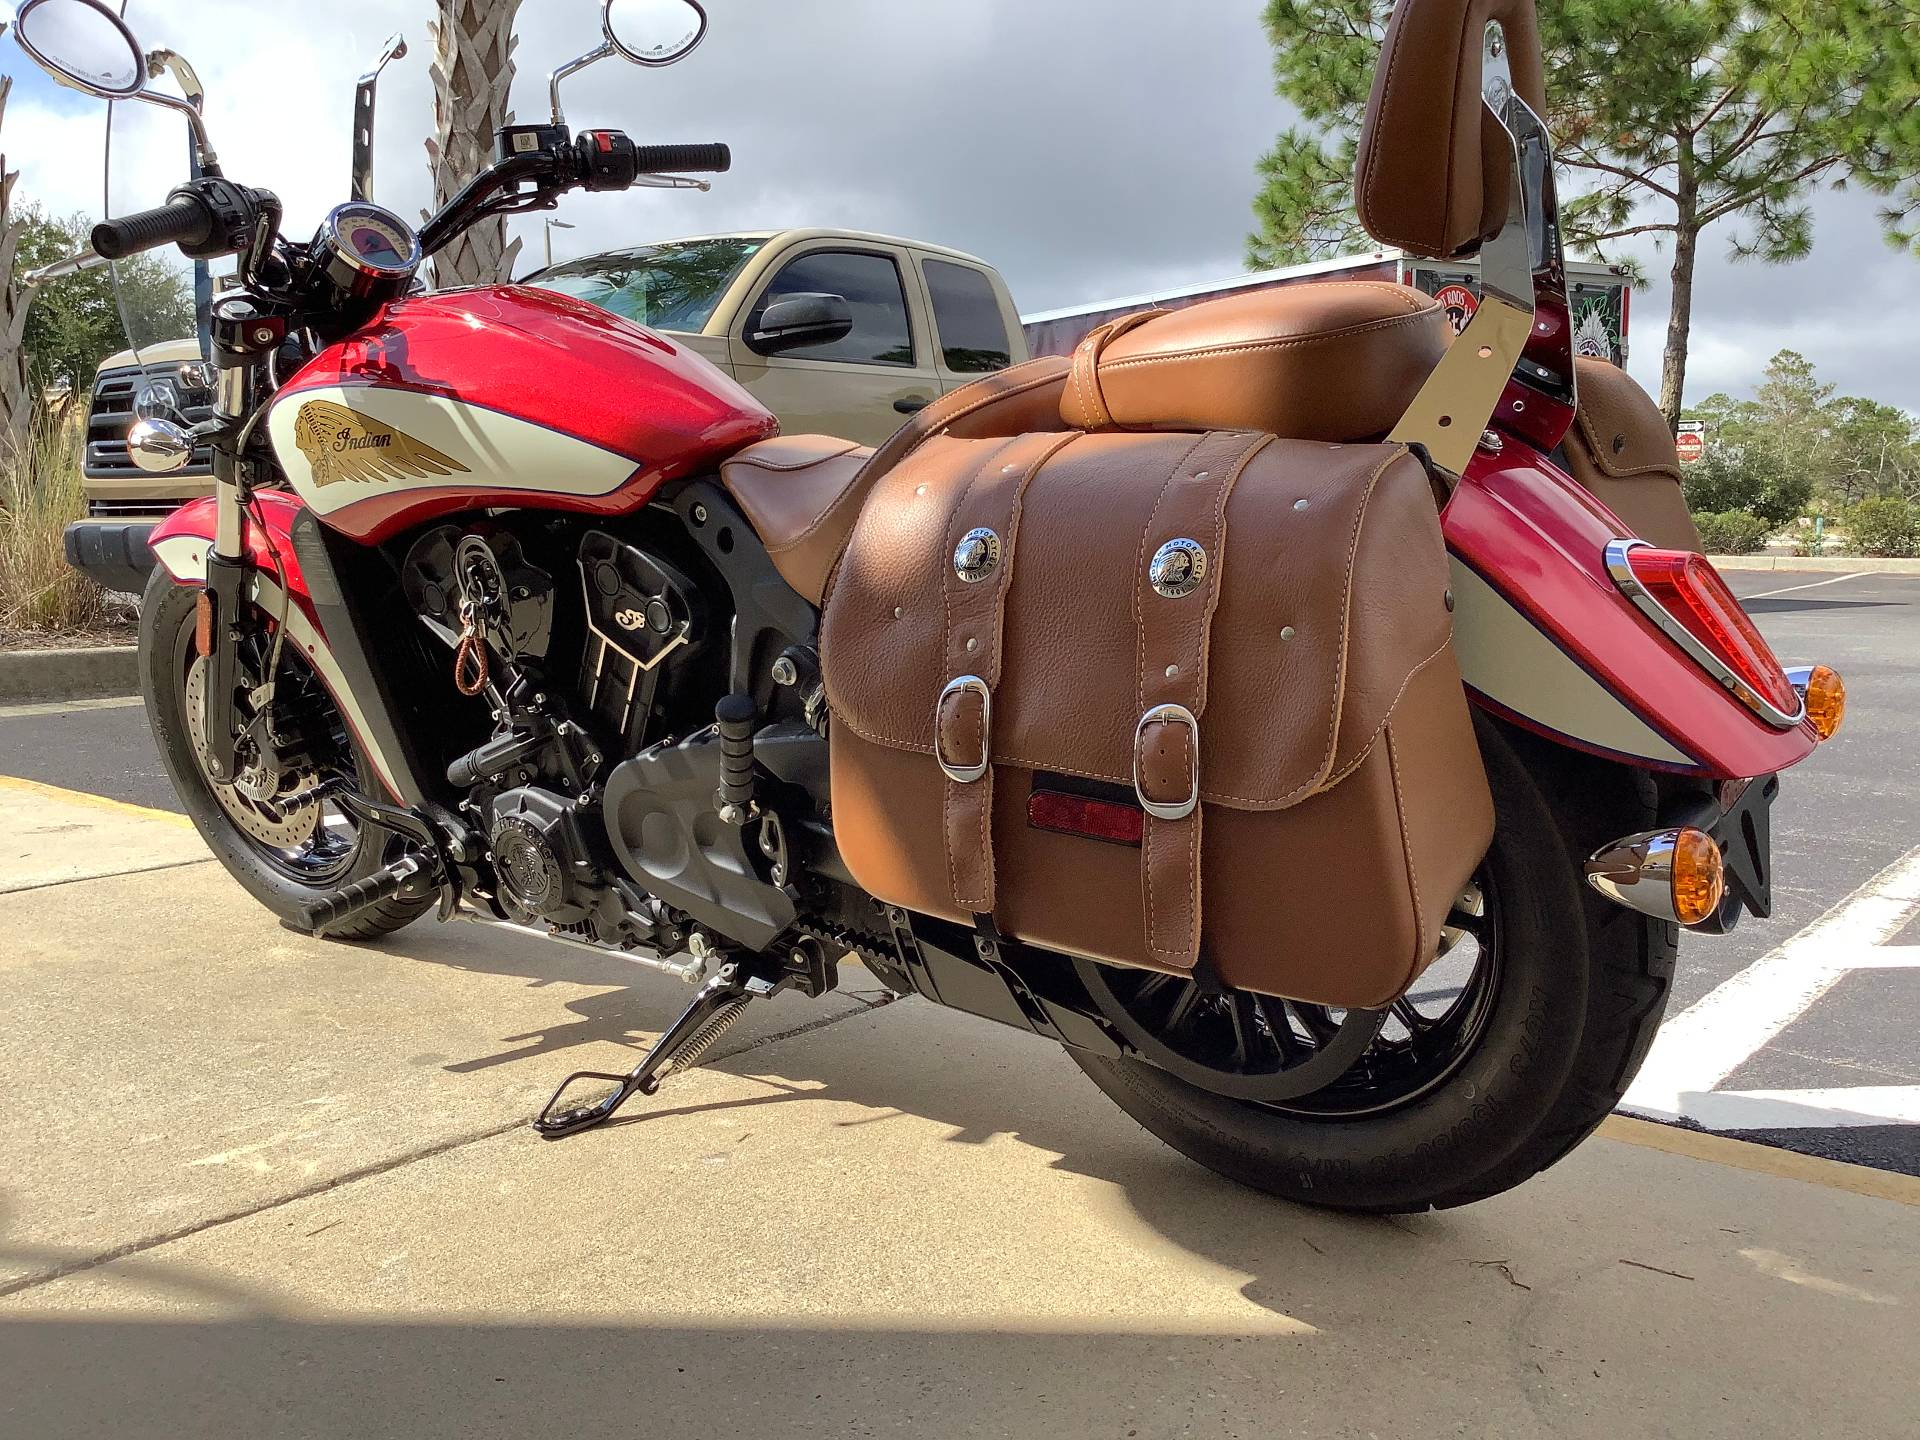 2019 Indian SCOUT SIXTY ICON in Panama City Beach, Florida - Photo 8